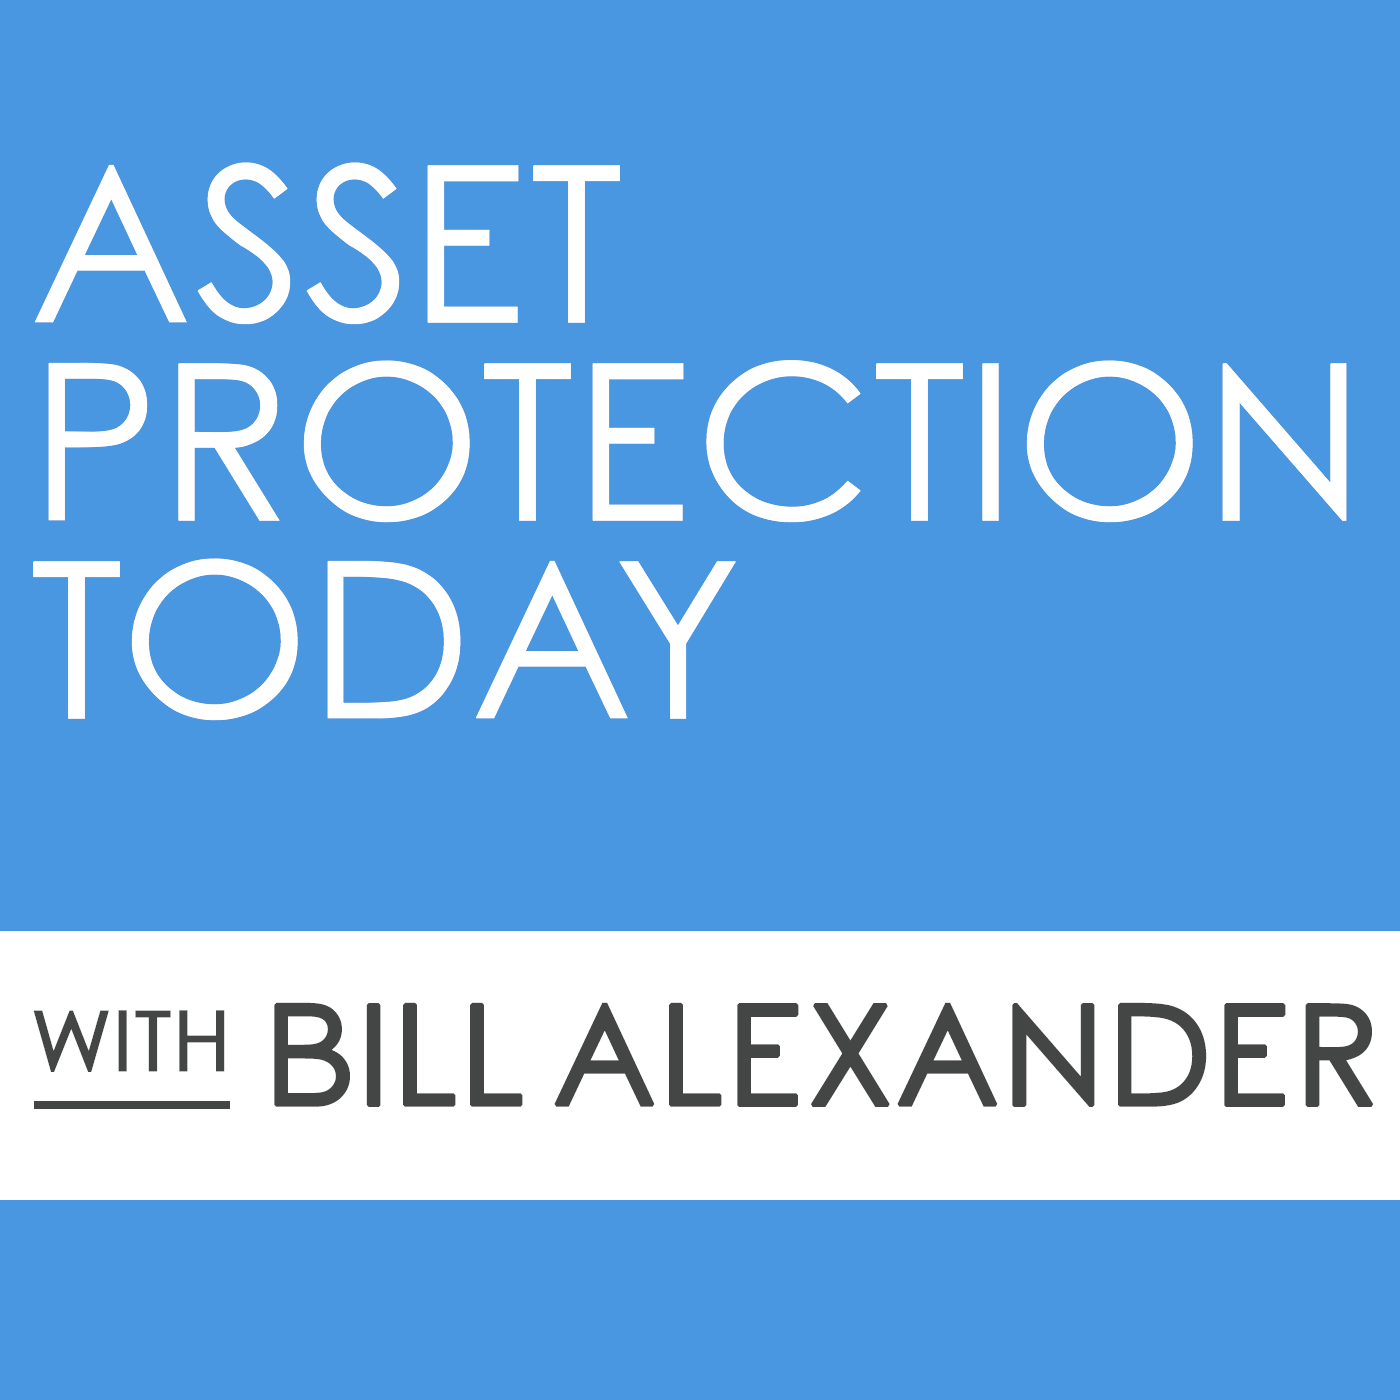 Asset Protection Today with Bill Alexander show art